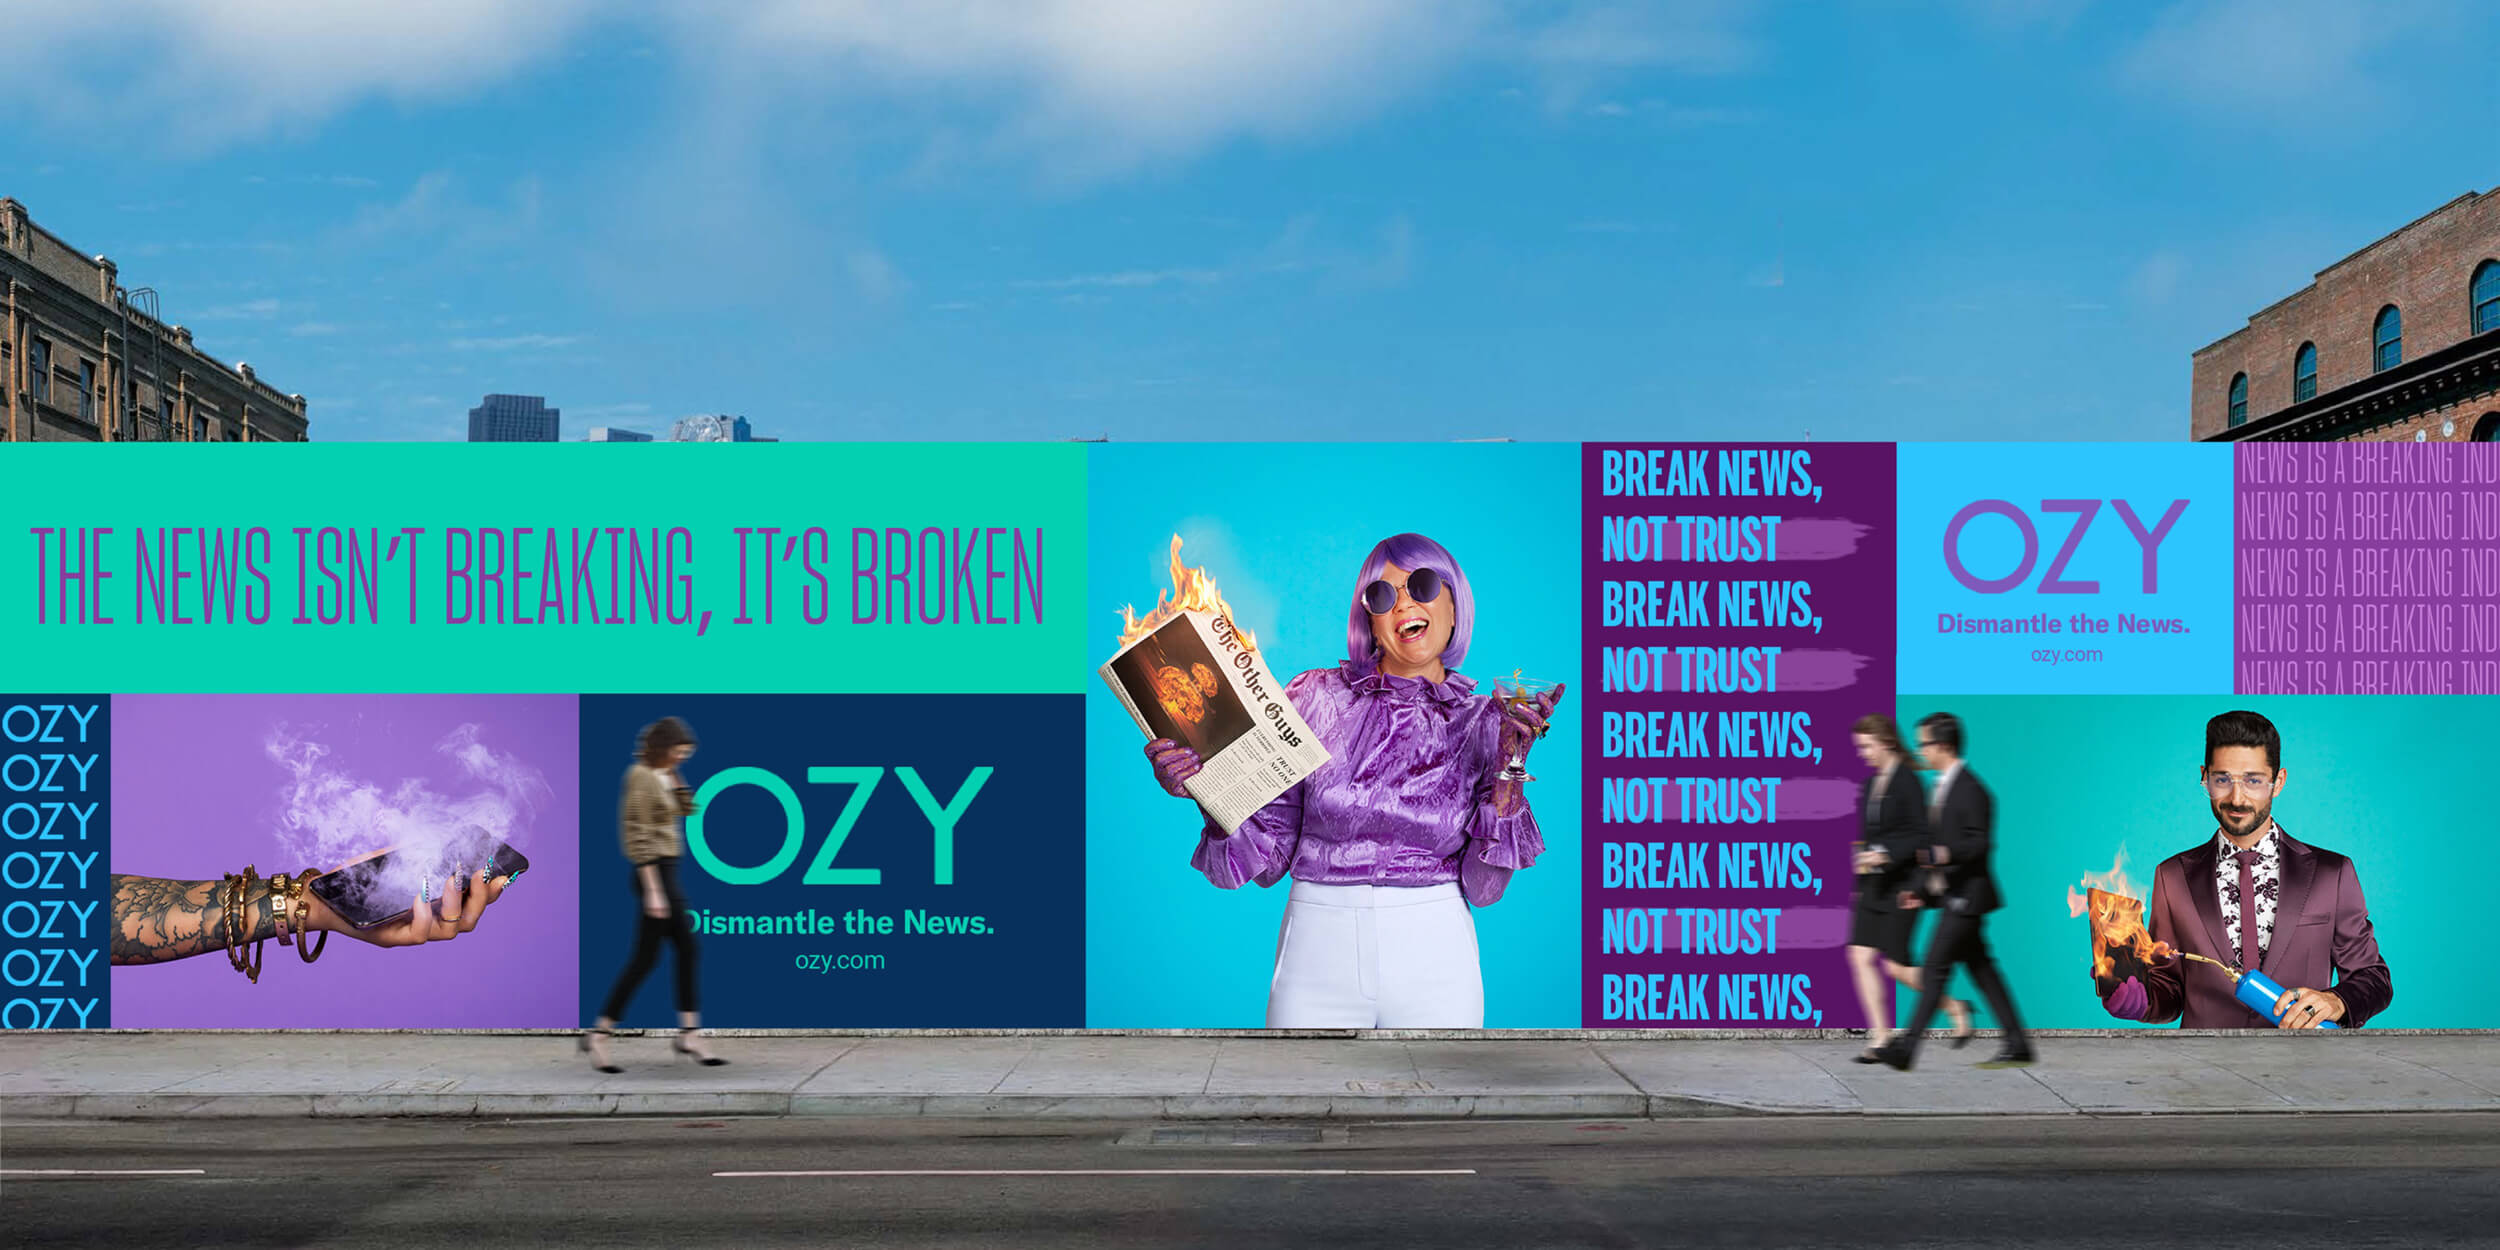 A street view of the Ozy ad campaign